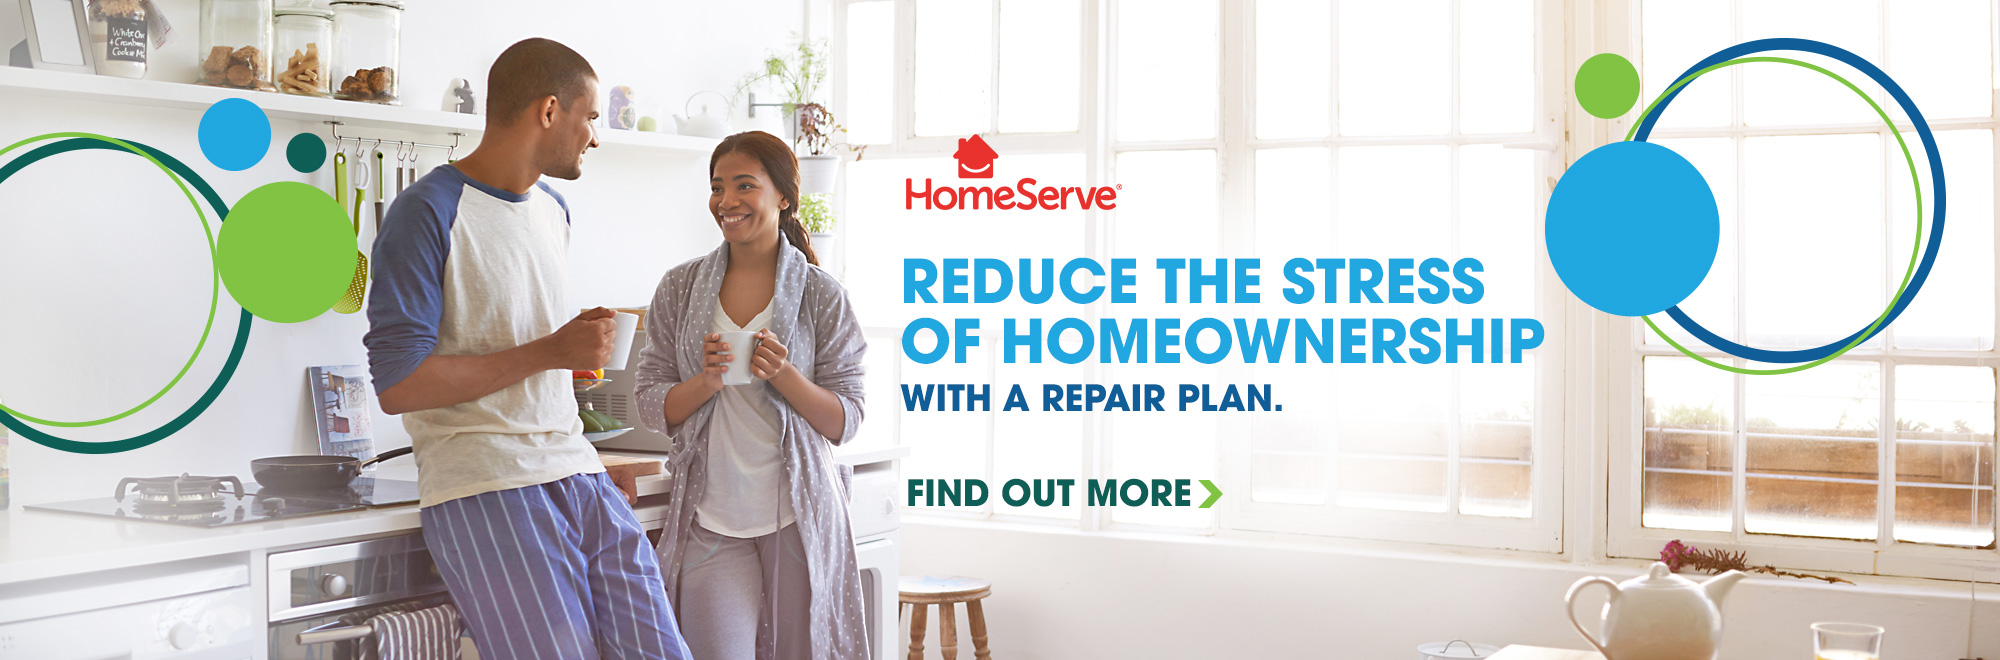 Find out more about how you can reduce the stress of home ownership with a repair loan.